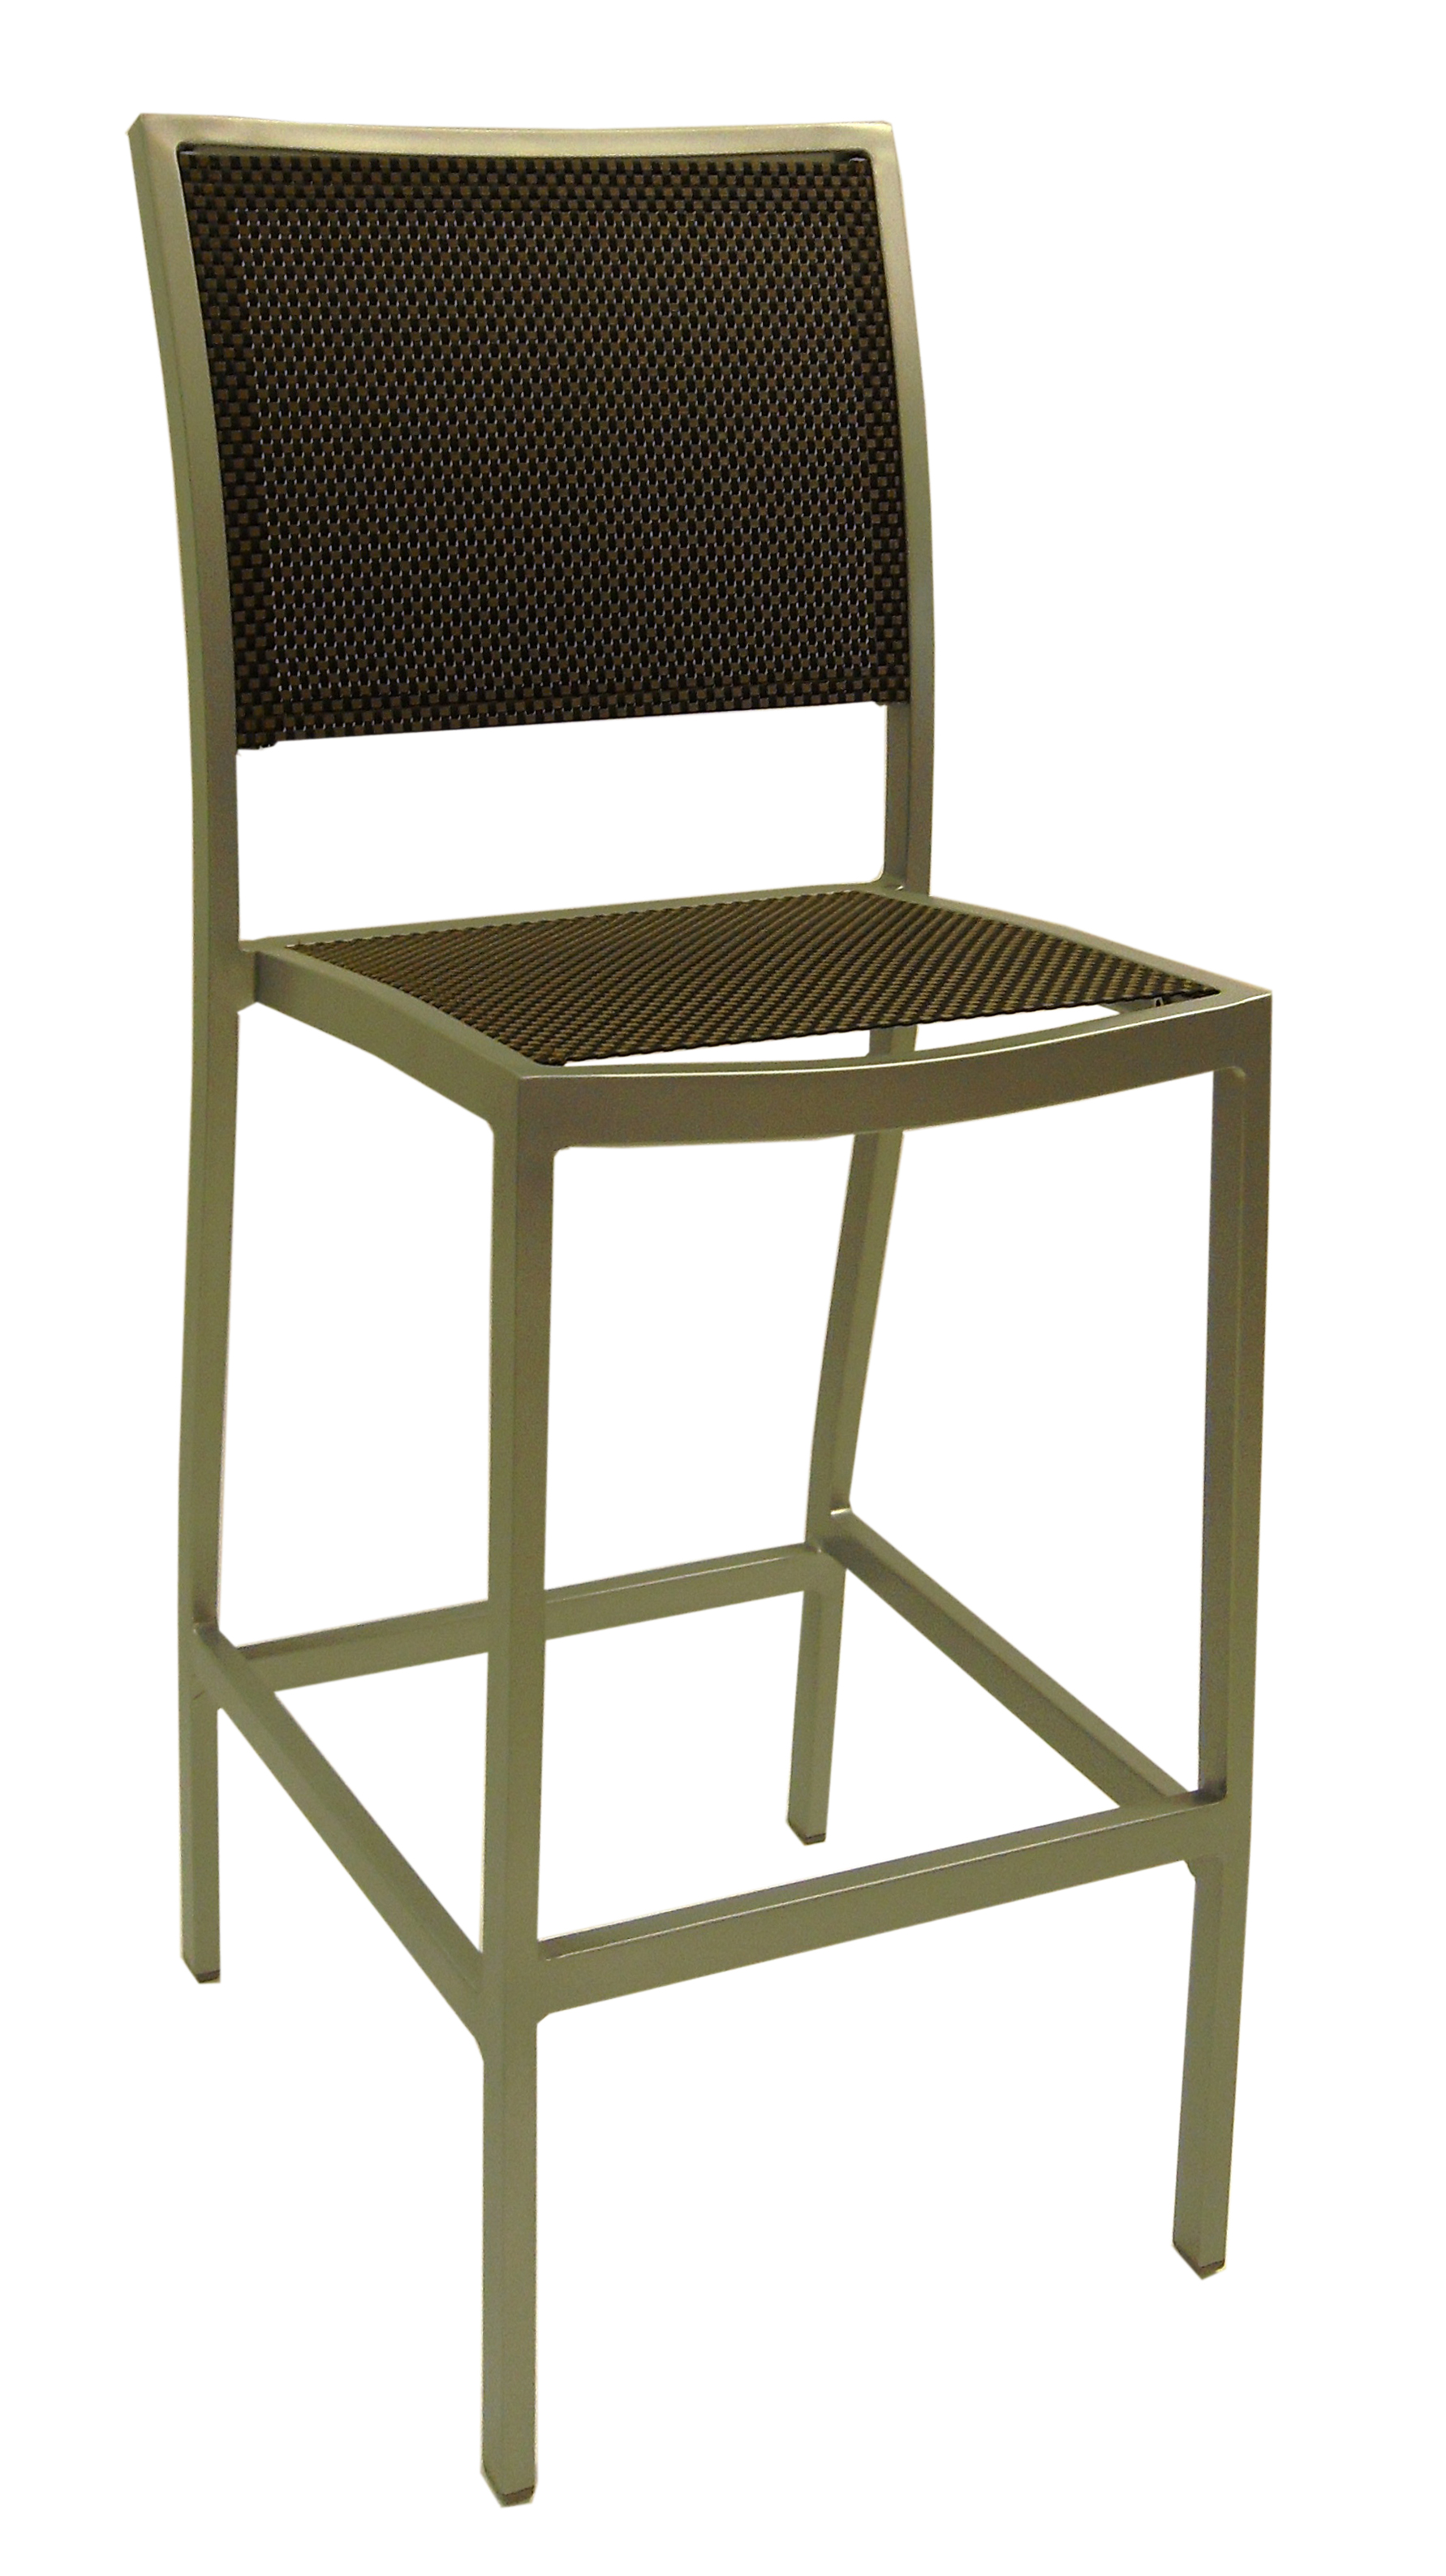 MED BAR STOOL WITHOUT ARMS